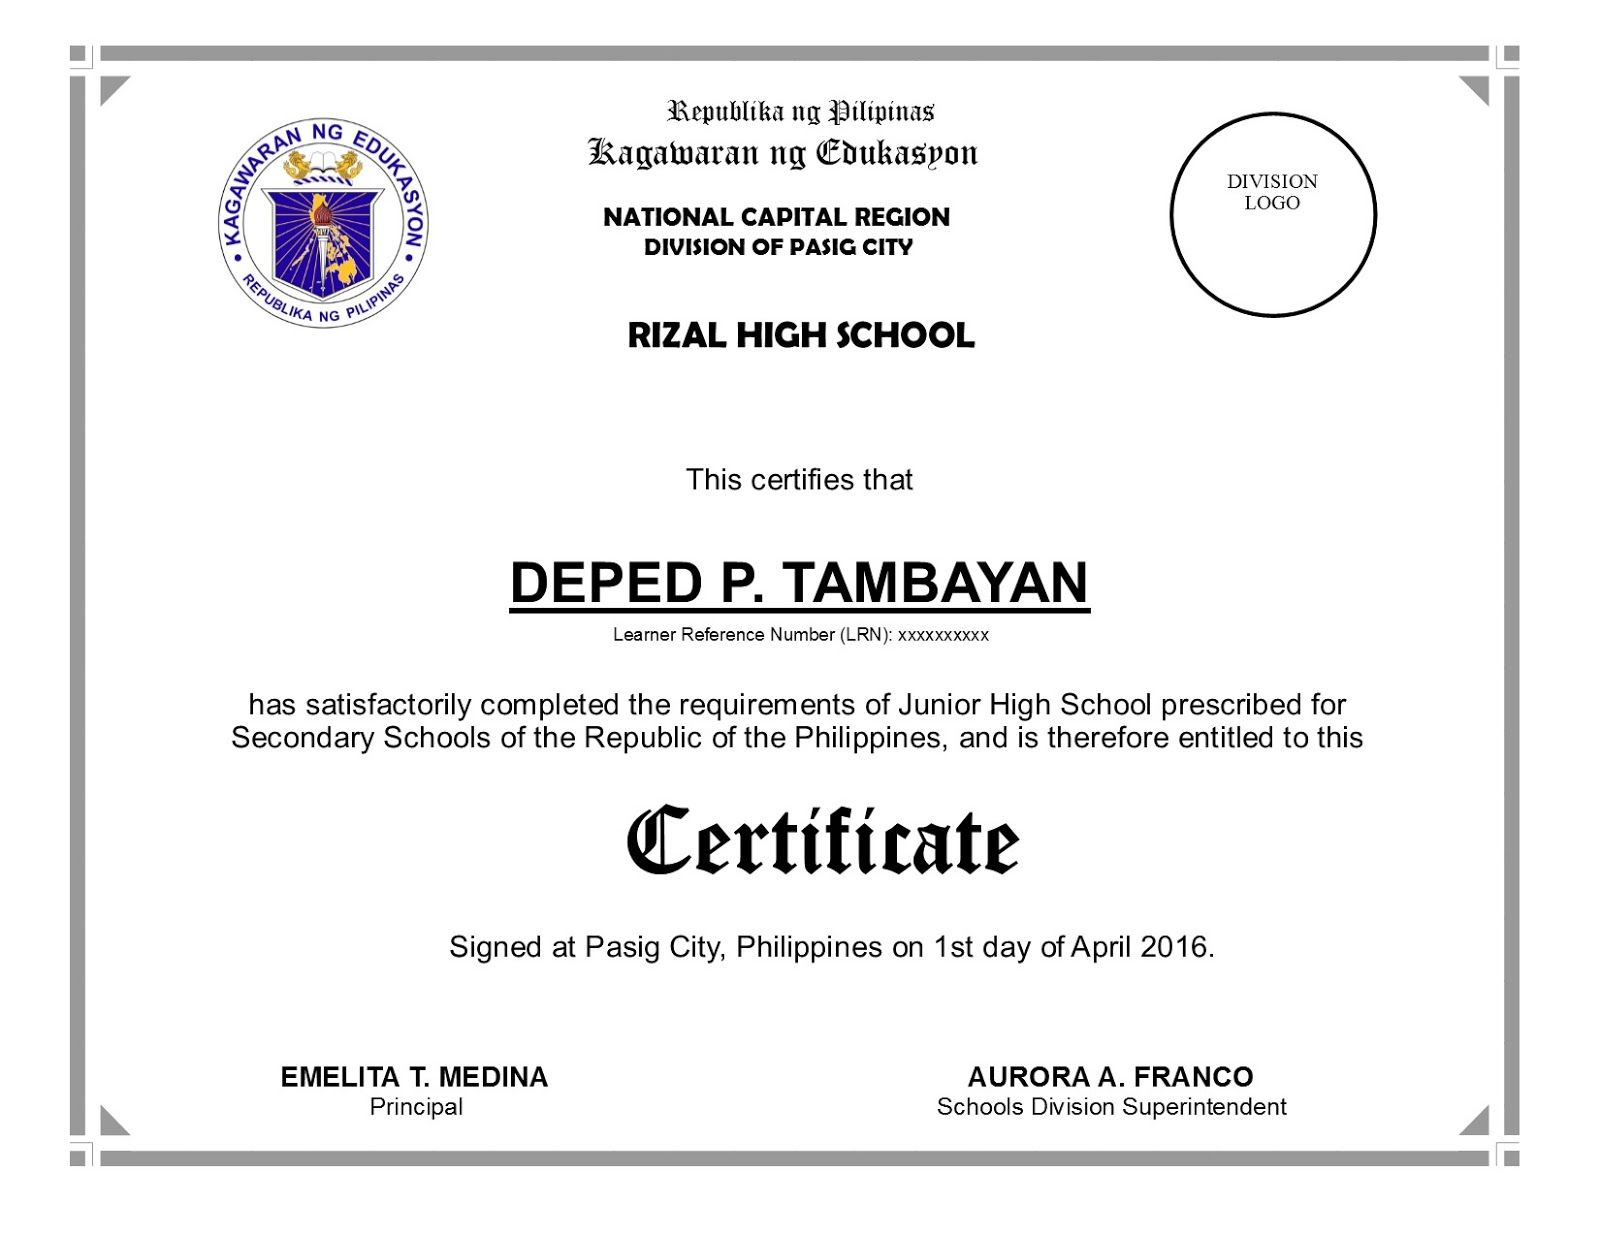 deped diploma sample wordings